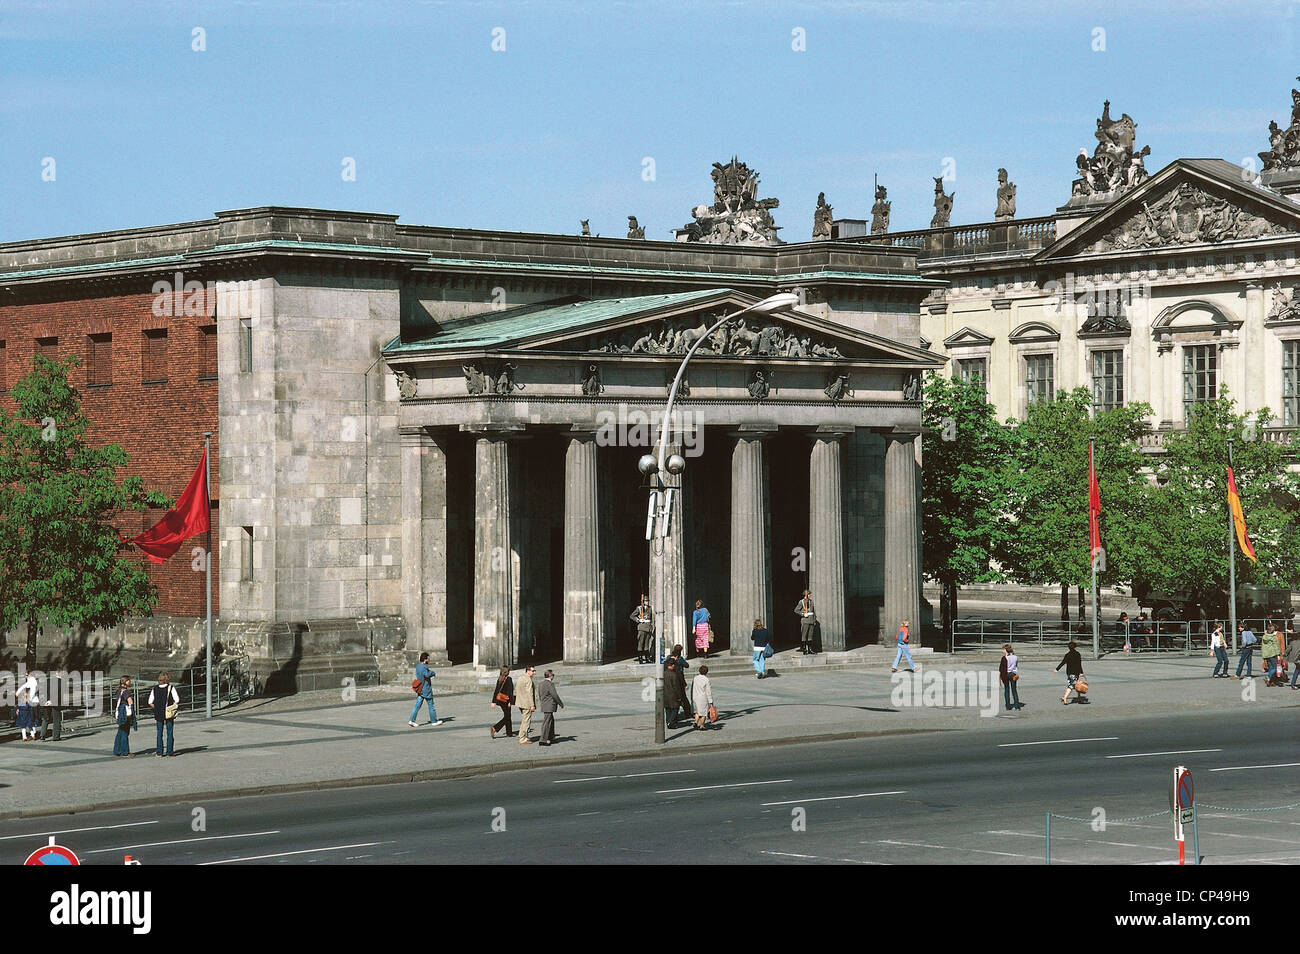 Germany - XX century - the German Democratic Republic - East Berlin. The Neue Wache - Stock Image